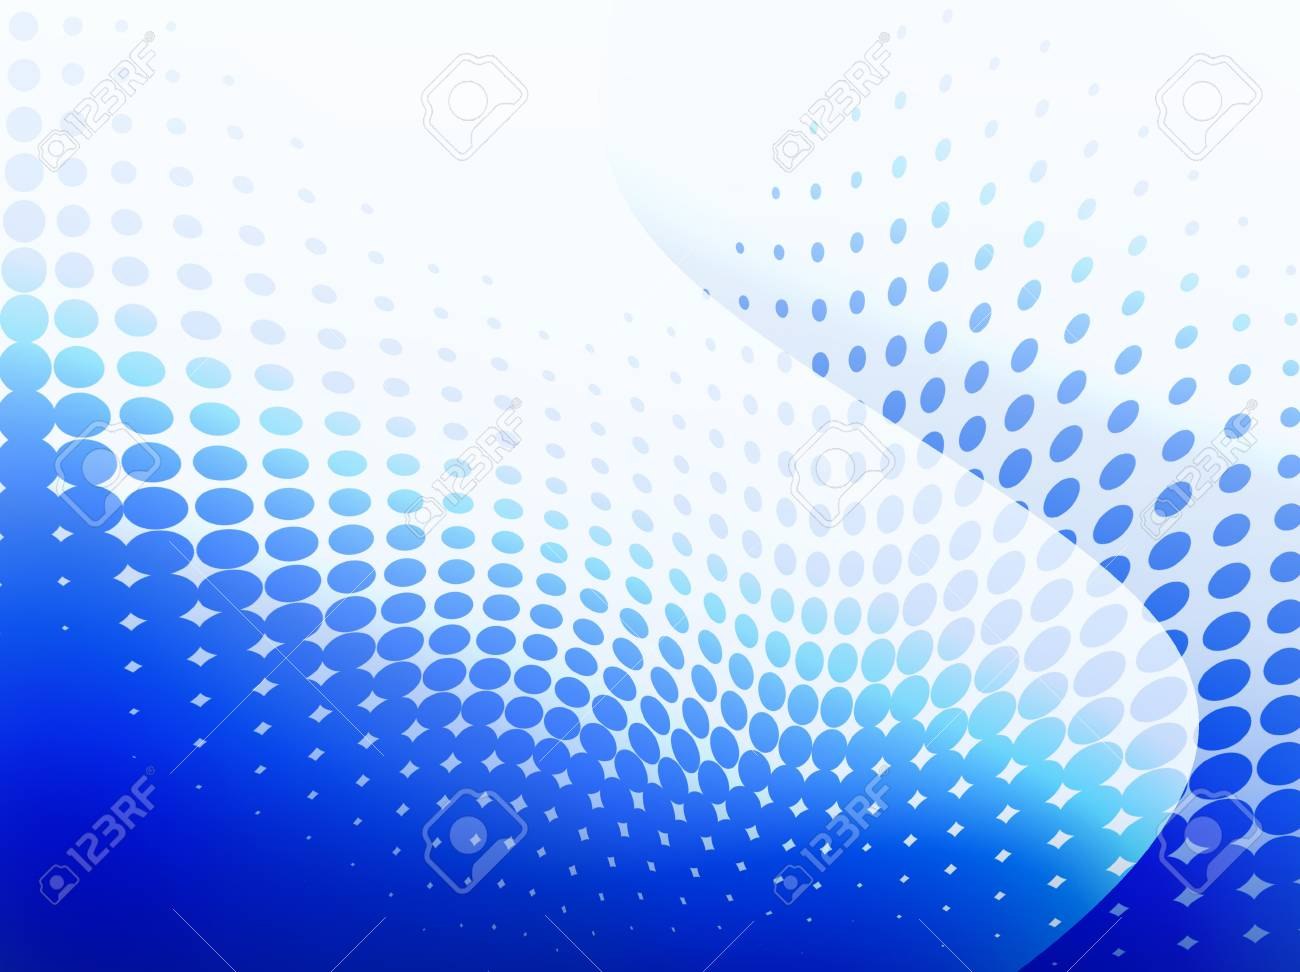 Background with blue circles tone. Stock Photo - 12726352